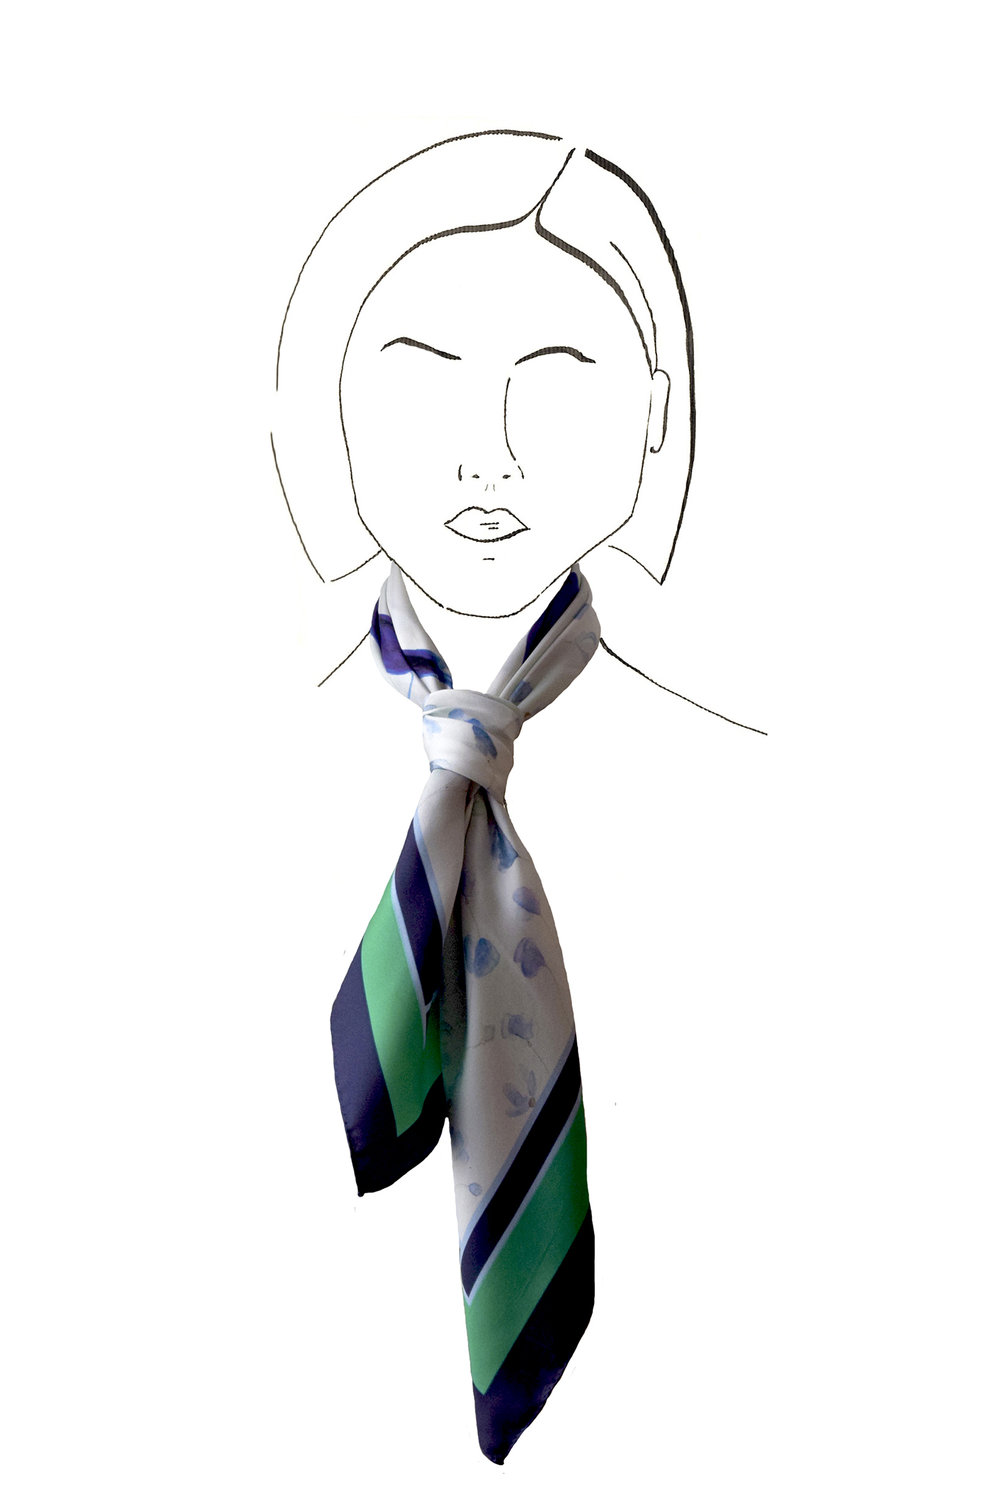 A bold and assertive tie knot.